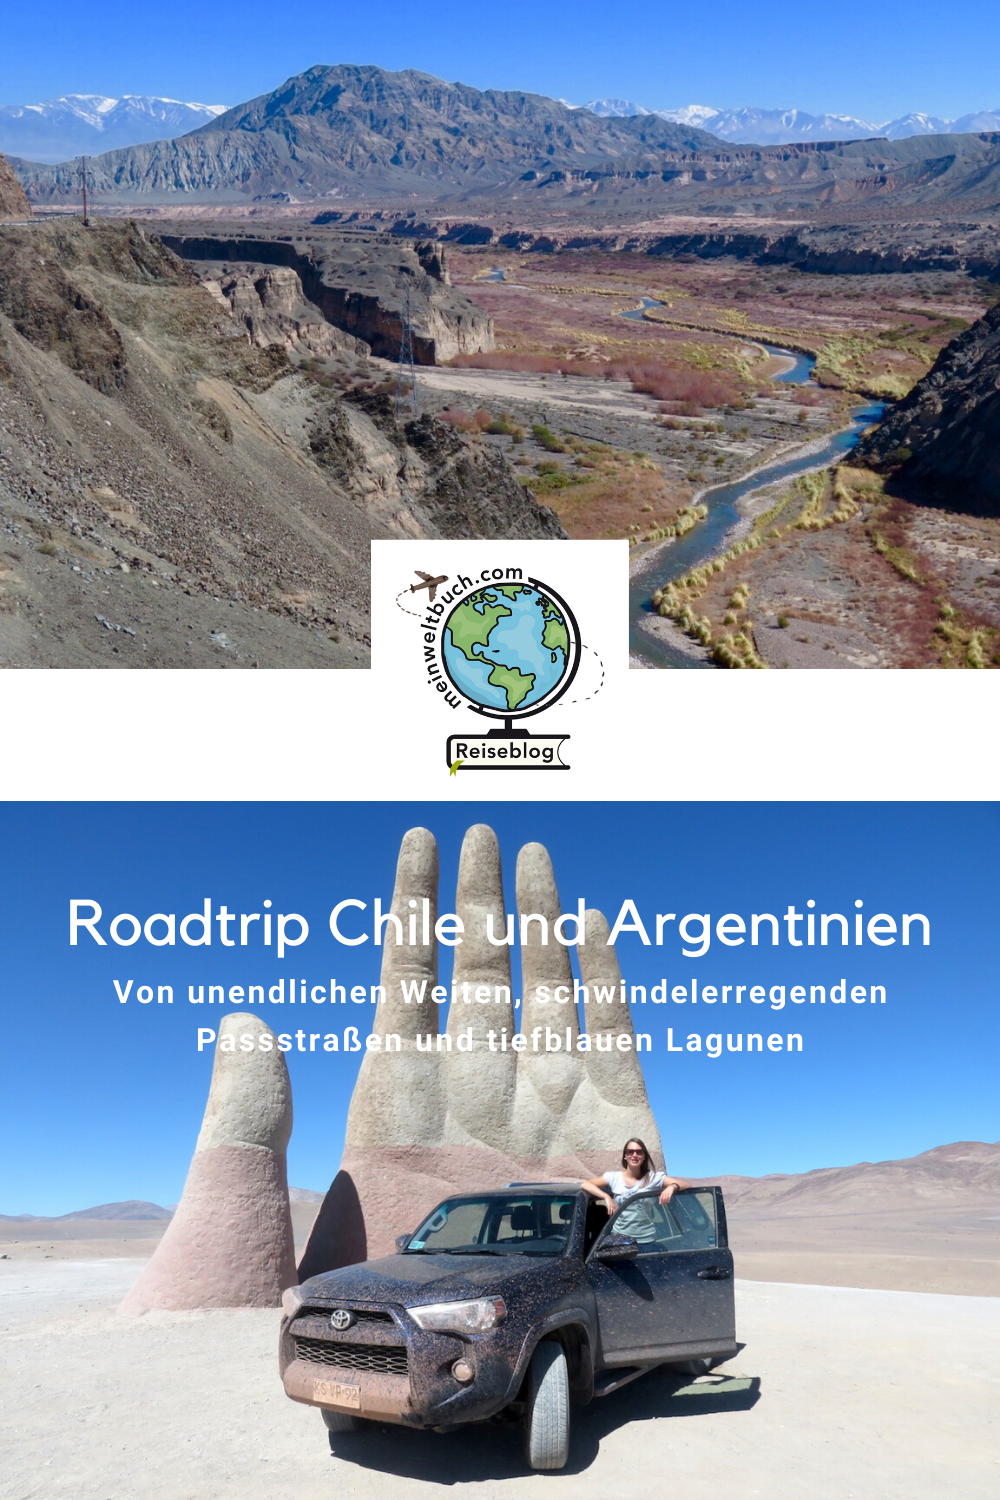 Roadtrip Chile und Argentinien